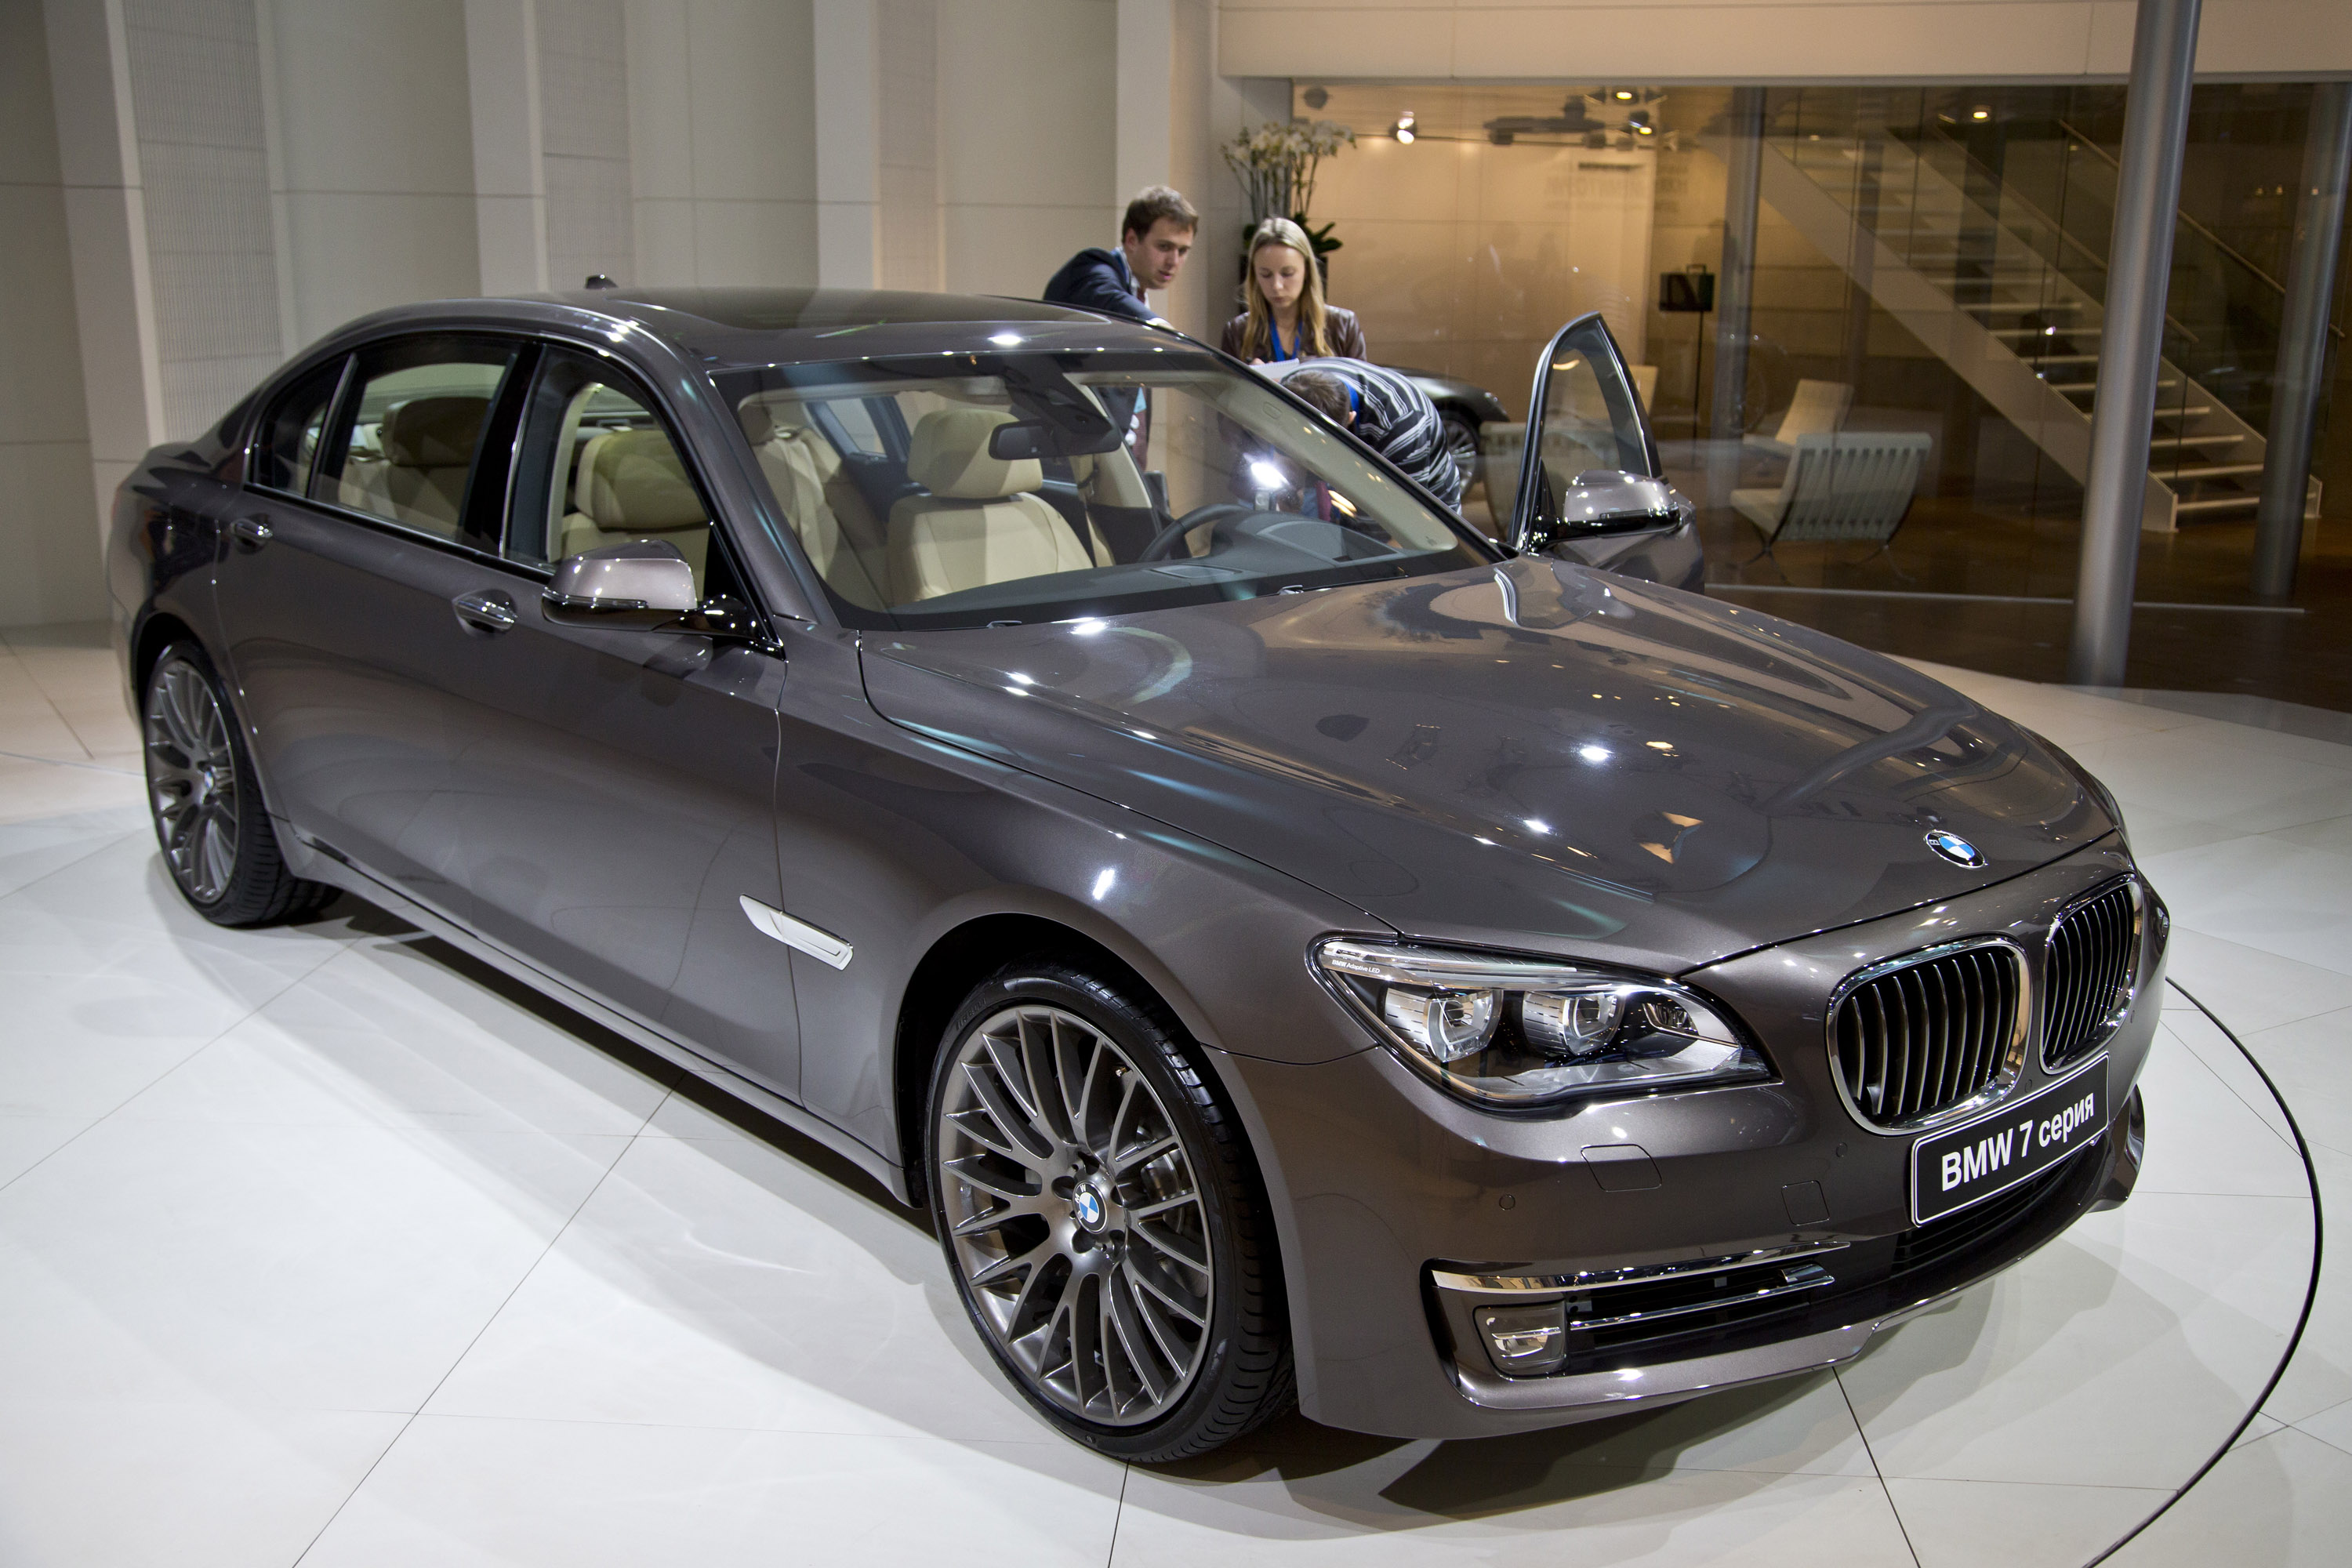 BMW 7 series 730Li 2012 photo - 6